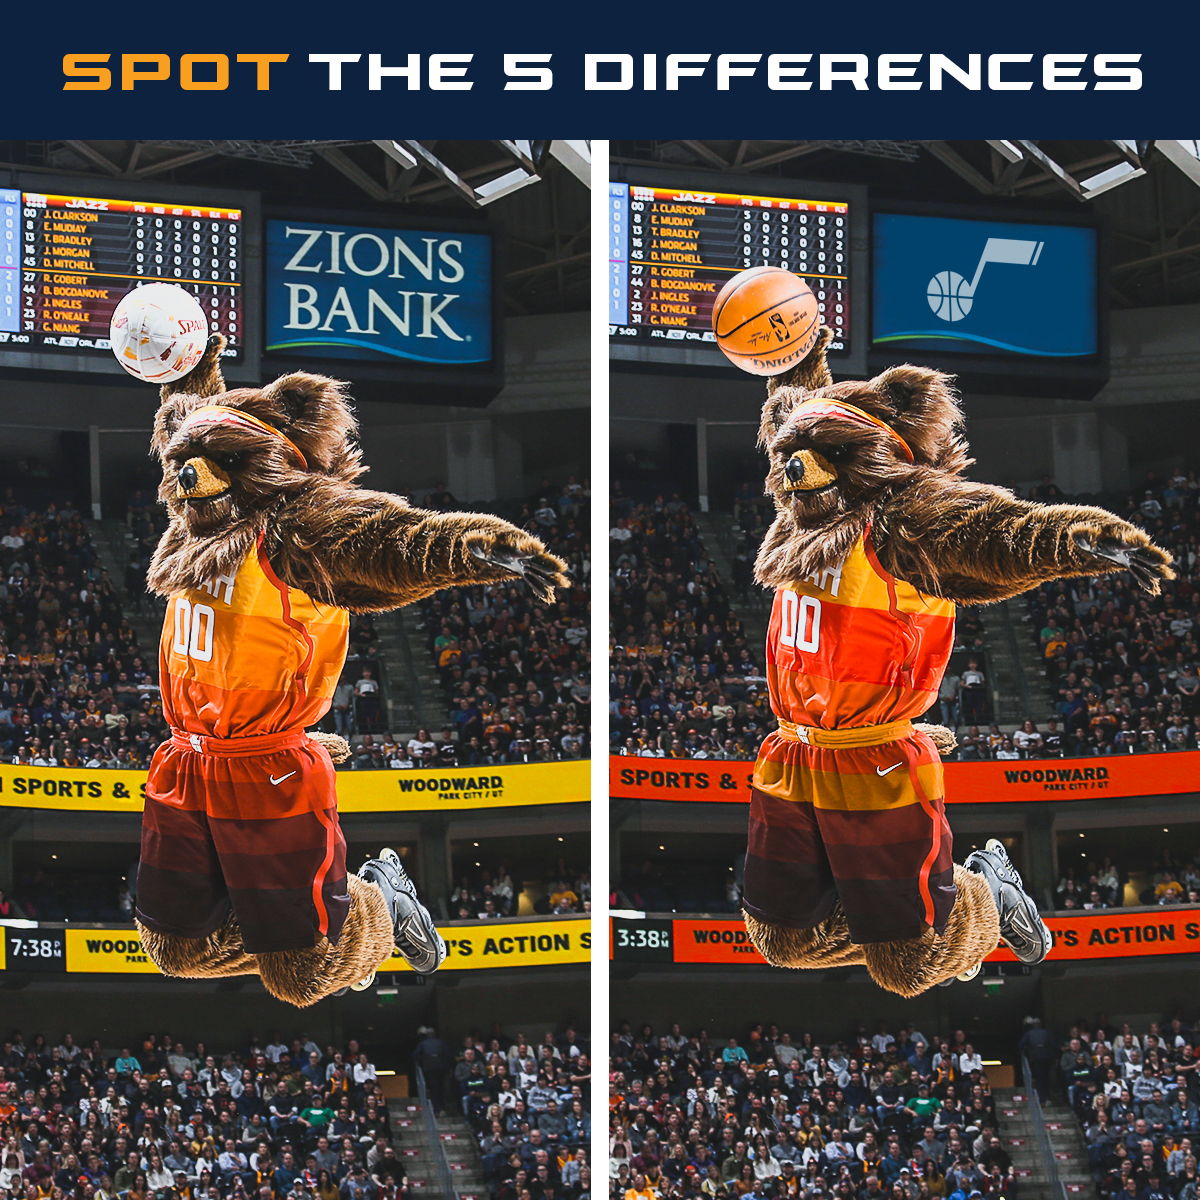 SpotTheDifference_Bear_1200x1200 (1)